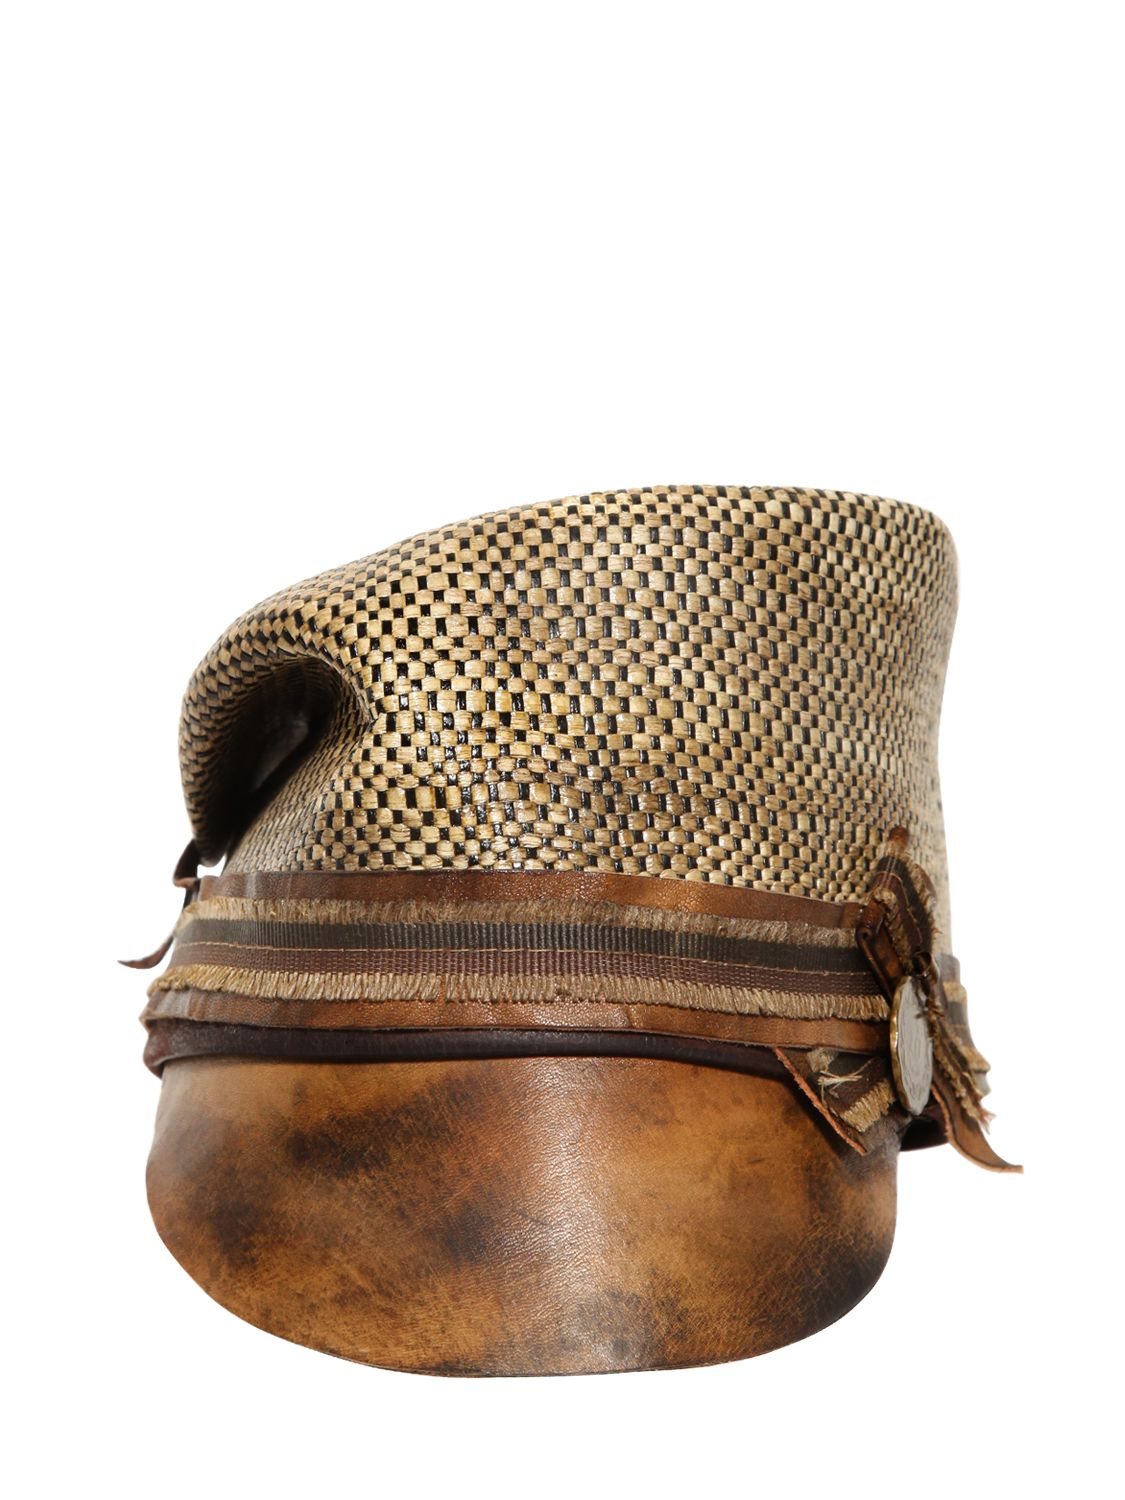 Lyst - Move Cotton Canvas   Leather Military Hat in Natural for Men 50b238bfd38